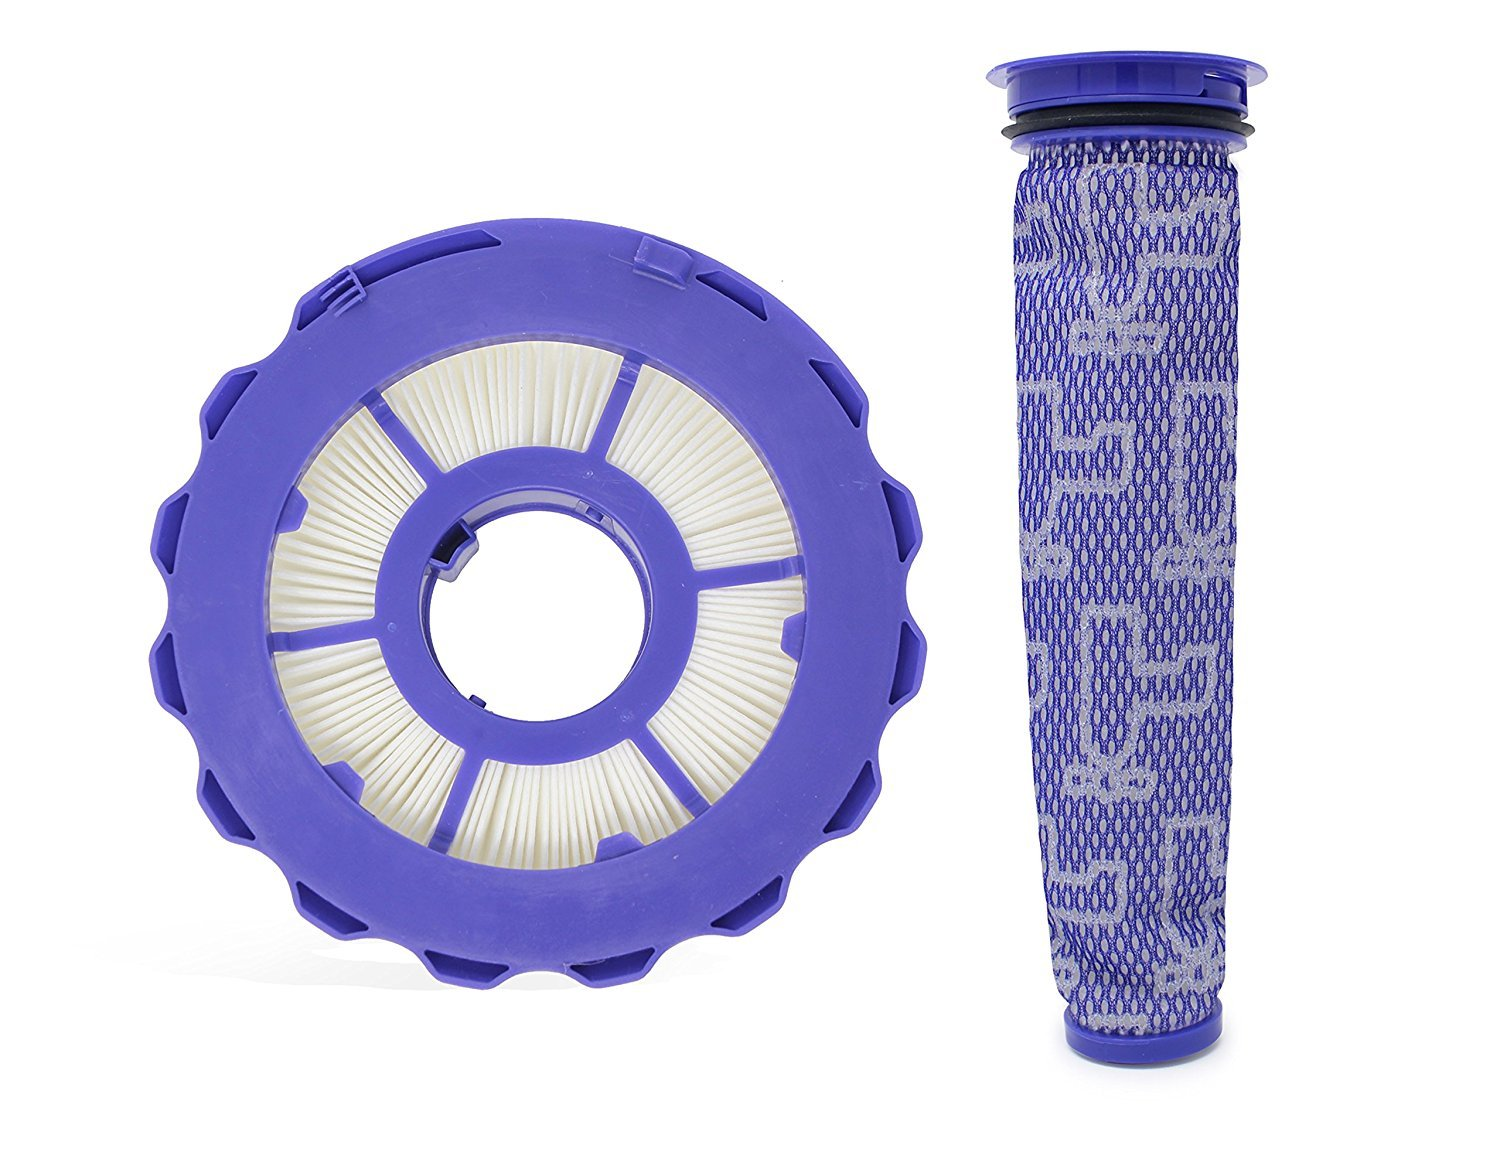 Leadaybetter Compatible Post & Pre Filter Set For Dyson DC40 Animal, Multi Floor, Origin and Total Clean Vacuums, Part Number 923587-02 & 922676-01